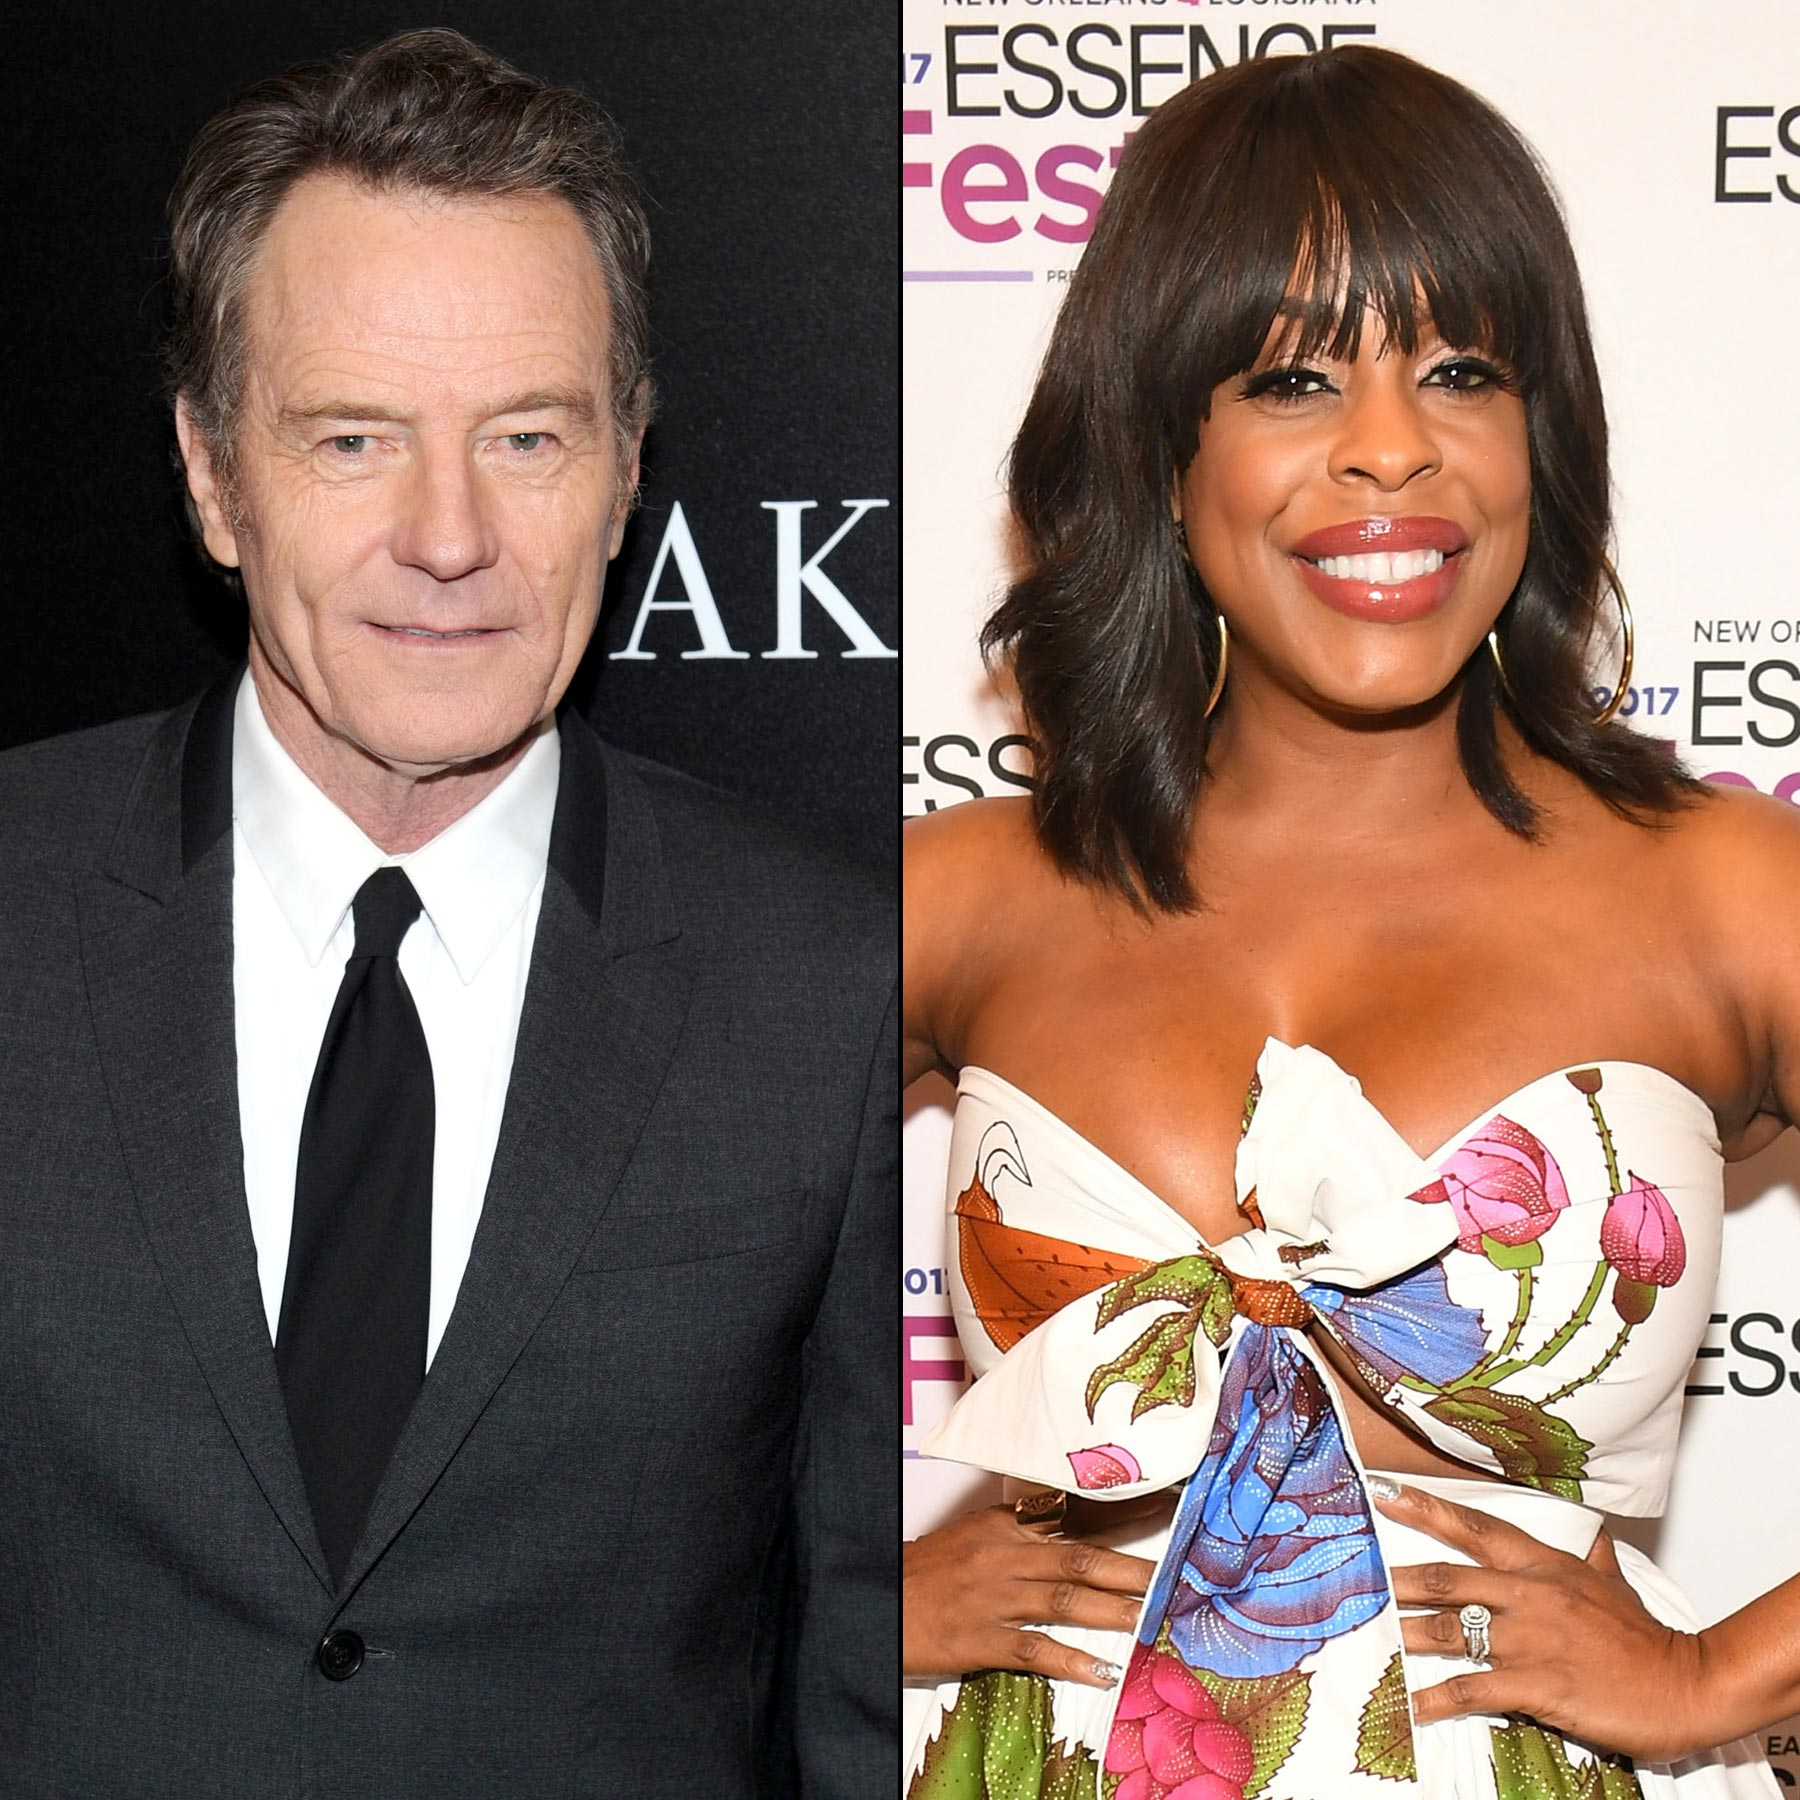 Family Guy Bryan Cranston Niecy Nash To Play Peter S New Bosses Ew Com It is not unusual for seth macfarlane to take stands opposed to the public proclamations of hollywood celebrities when he thinks they are wrong, and this seems to be another of those bold stands. family guy bryan cranston niecy nash